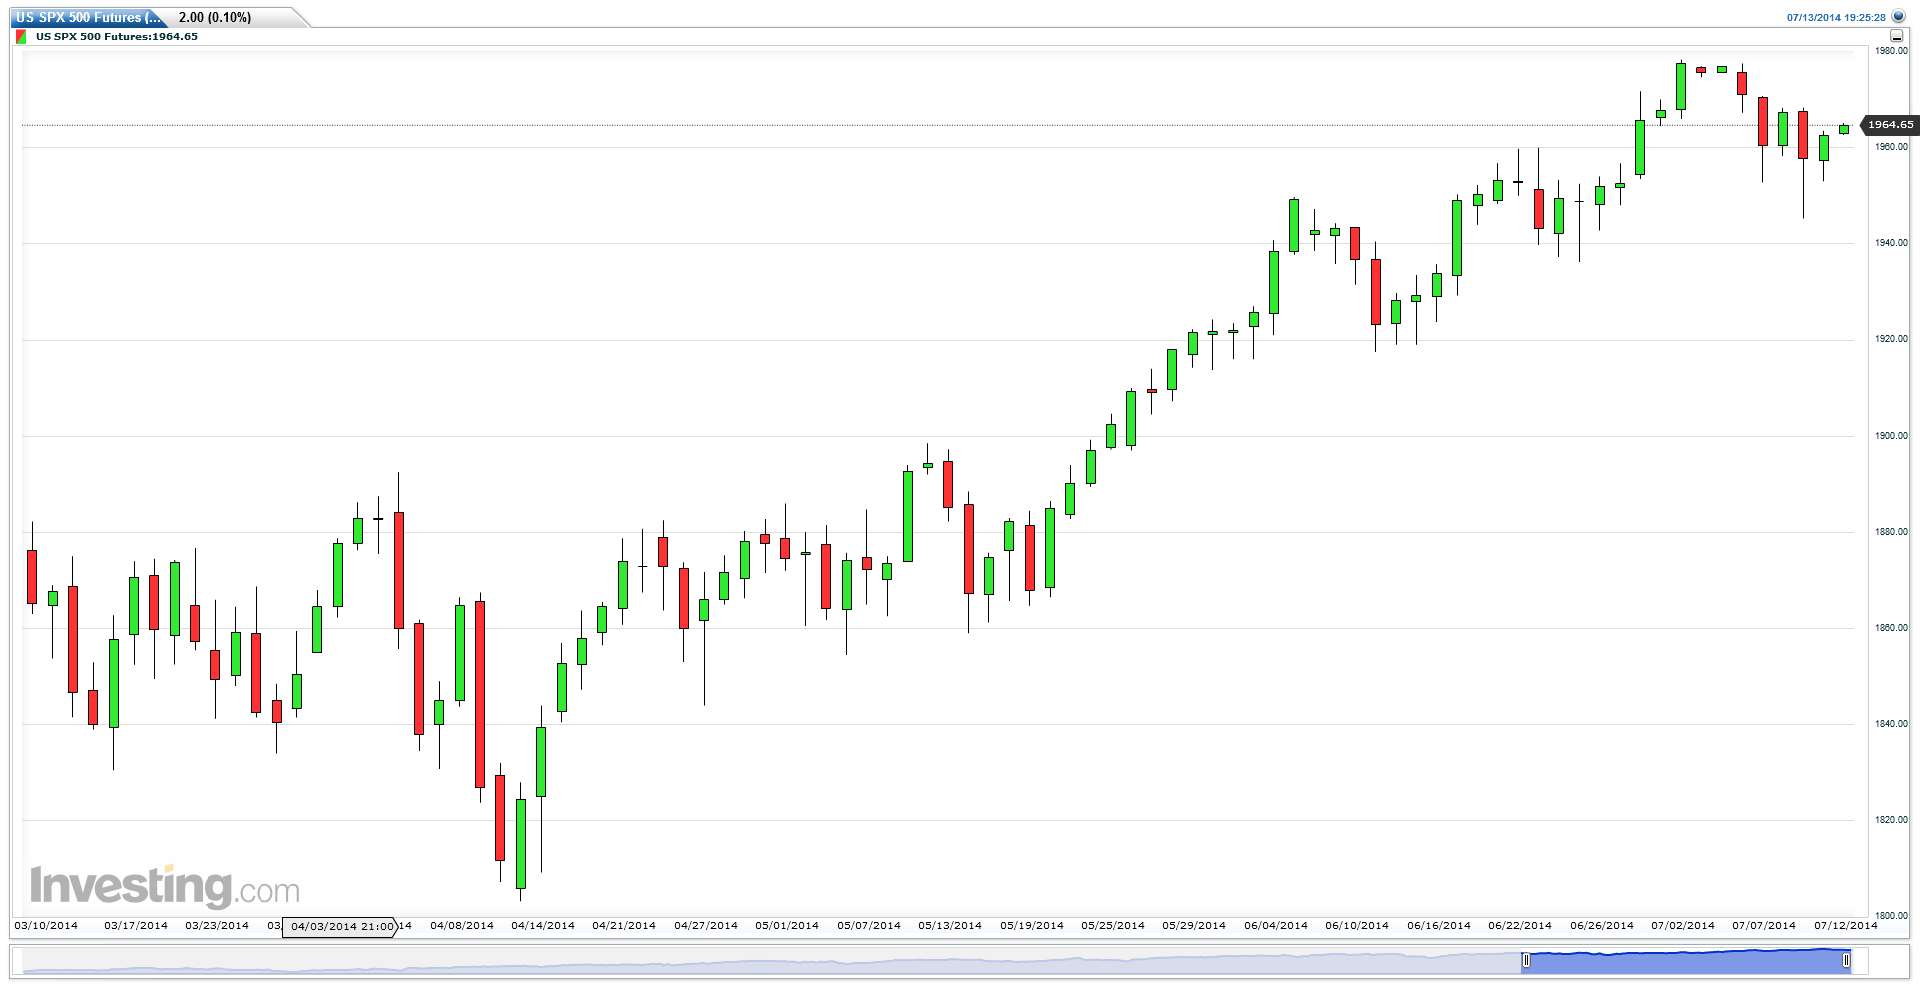 US SPX 500 Futures (Daily) - Option Queen Letter